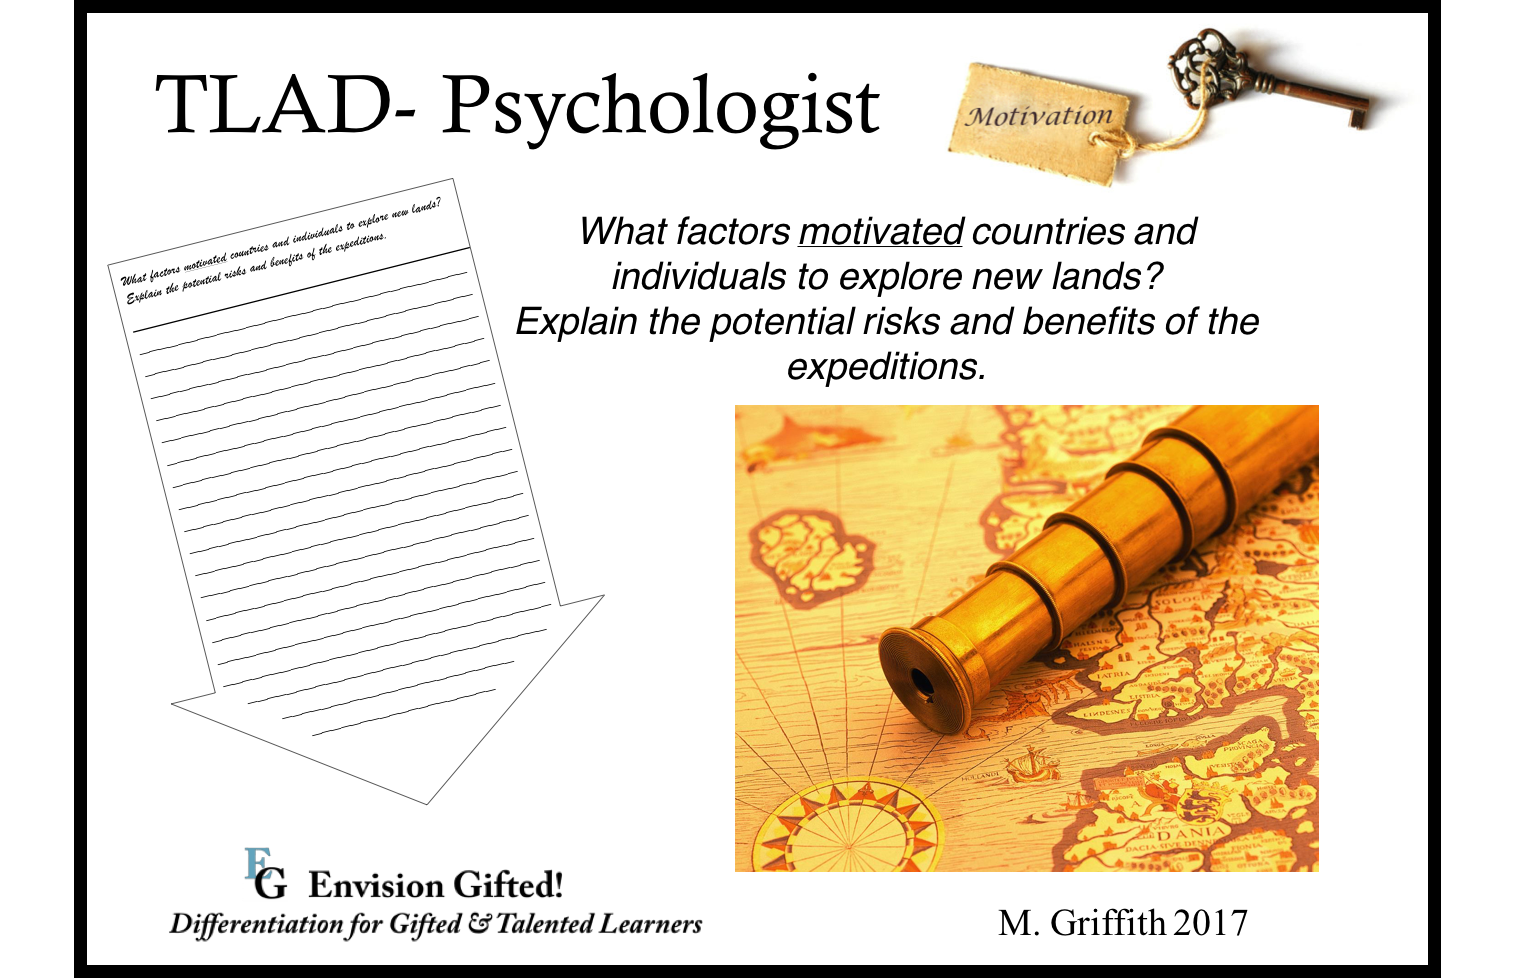 Envision Gifted. TLAD Psychologist Exploration